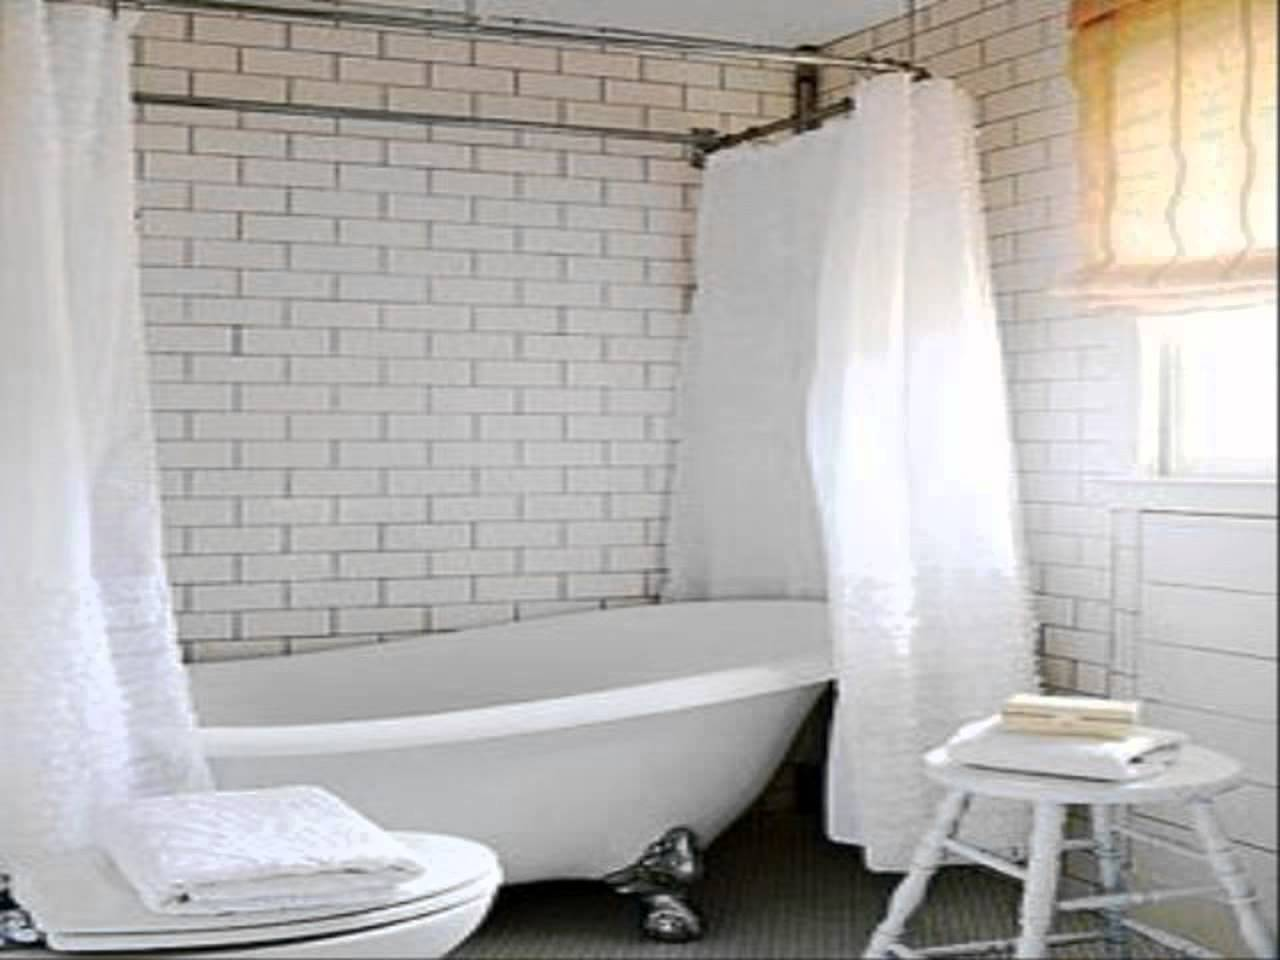 Clawfoot Tub Shower Curtain Solution | Clawfoot Tub Shower Curtain | Wrap Around Shower Curtains